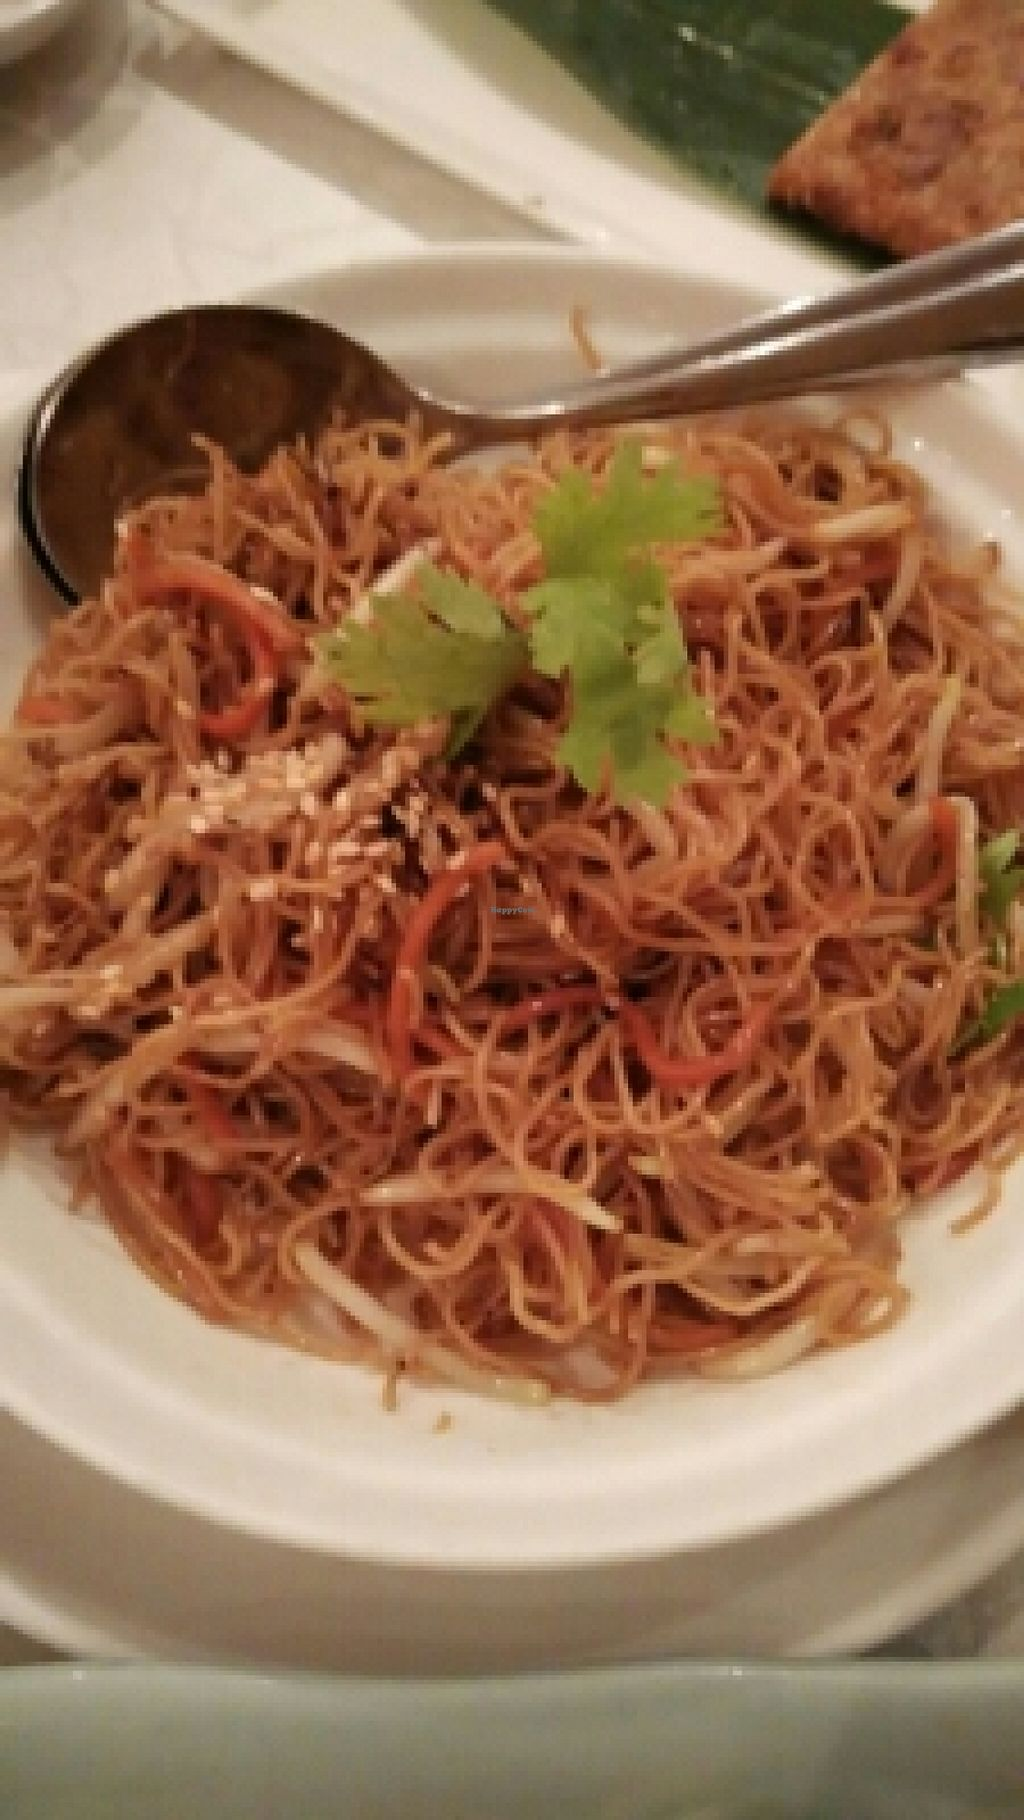 """Photo of Ling Zhi Vegetarian  by <a href=""""/members/profile/JimmySeah"""">JimmySeah</a> <br/>Hong Kong fried noodle <br/> December 26, 2015  - <a href='/contact/abuse/image/210/129826'>Report</a>"""